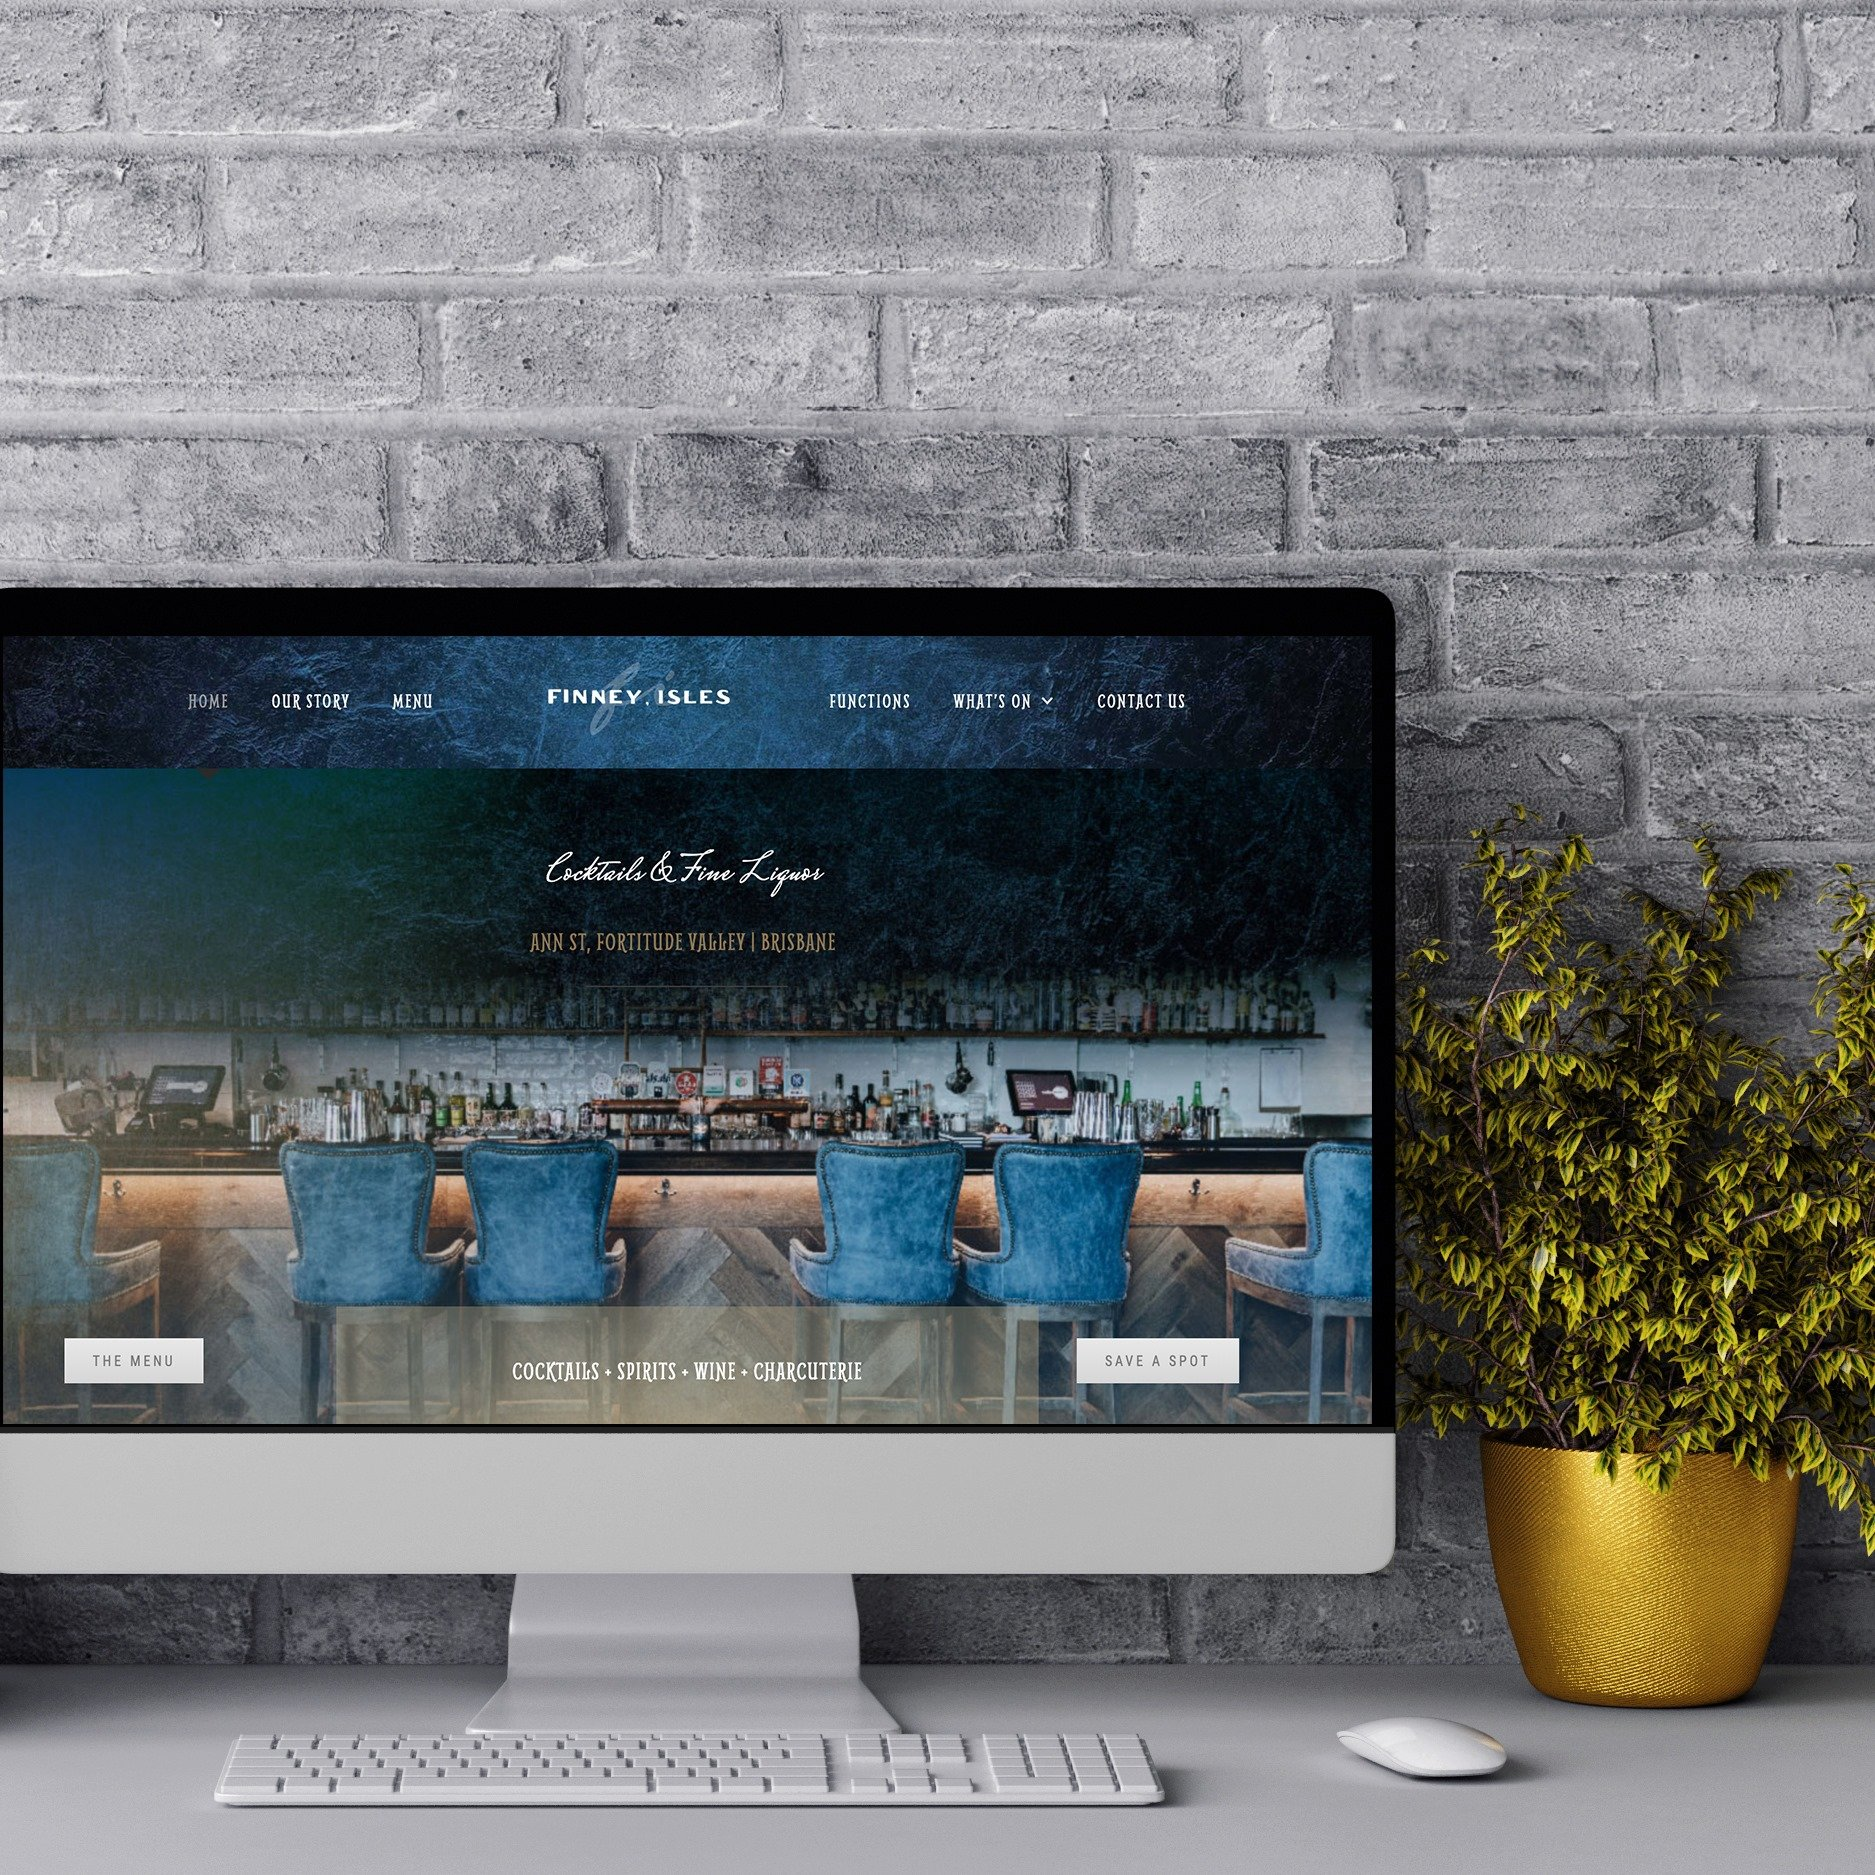 Finney Isles - Cocktail Bar - Hospitality - Website Design - Milk Creative